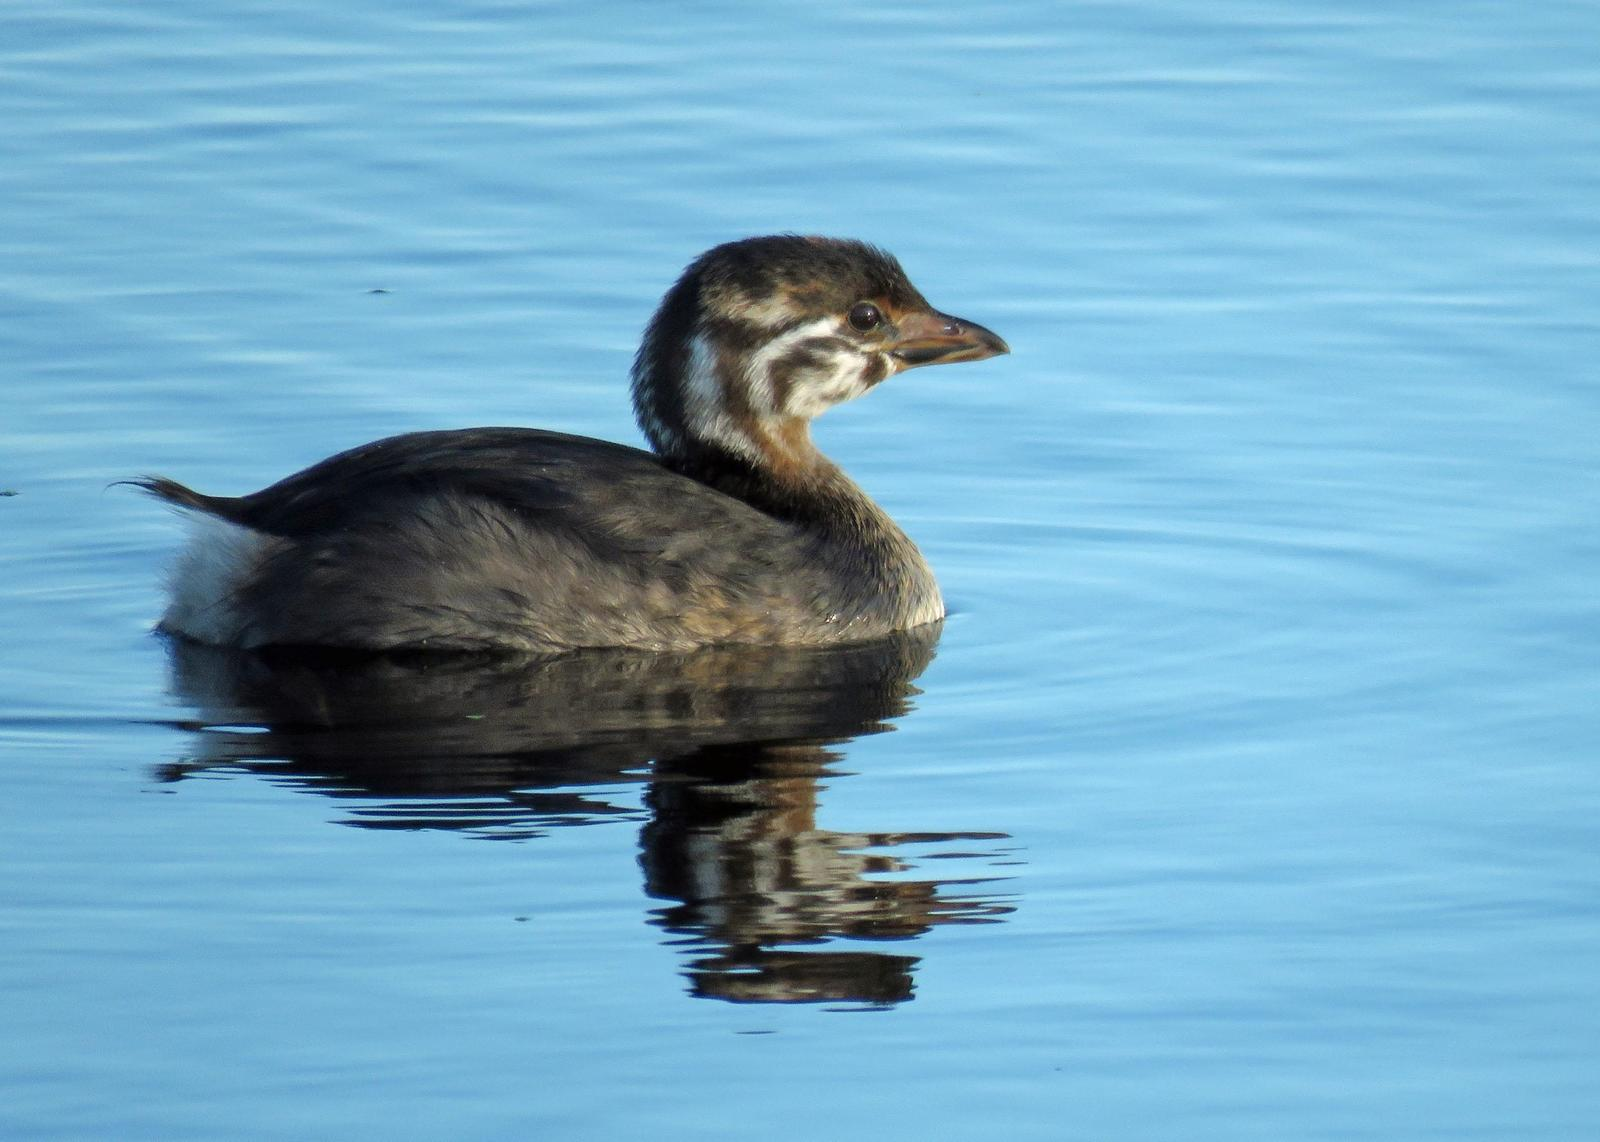 Pied-billed Grebe Photo by Kelly Preheim